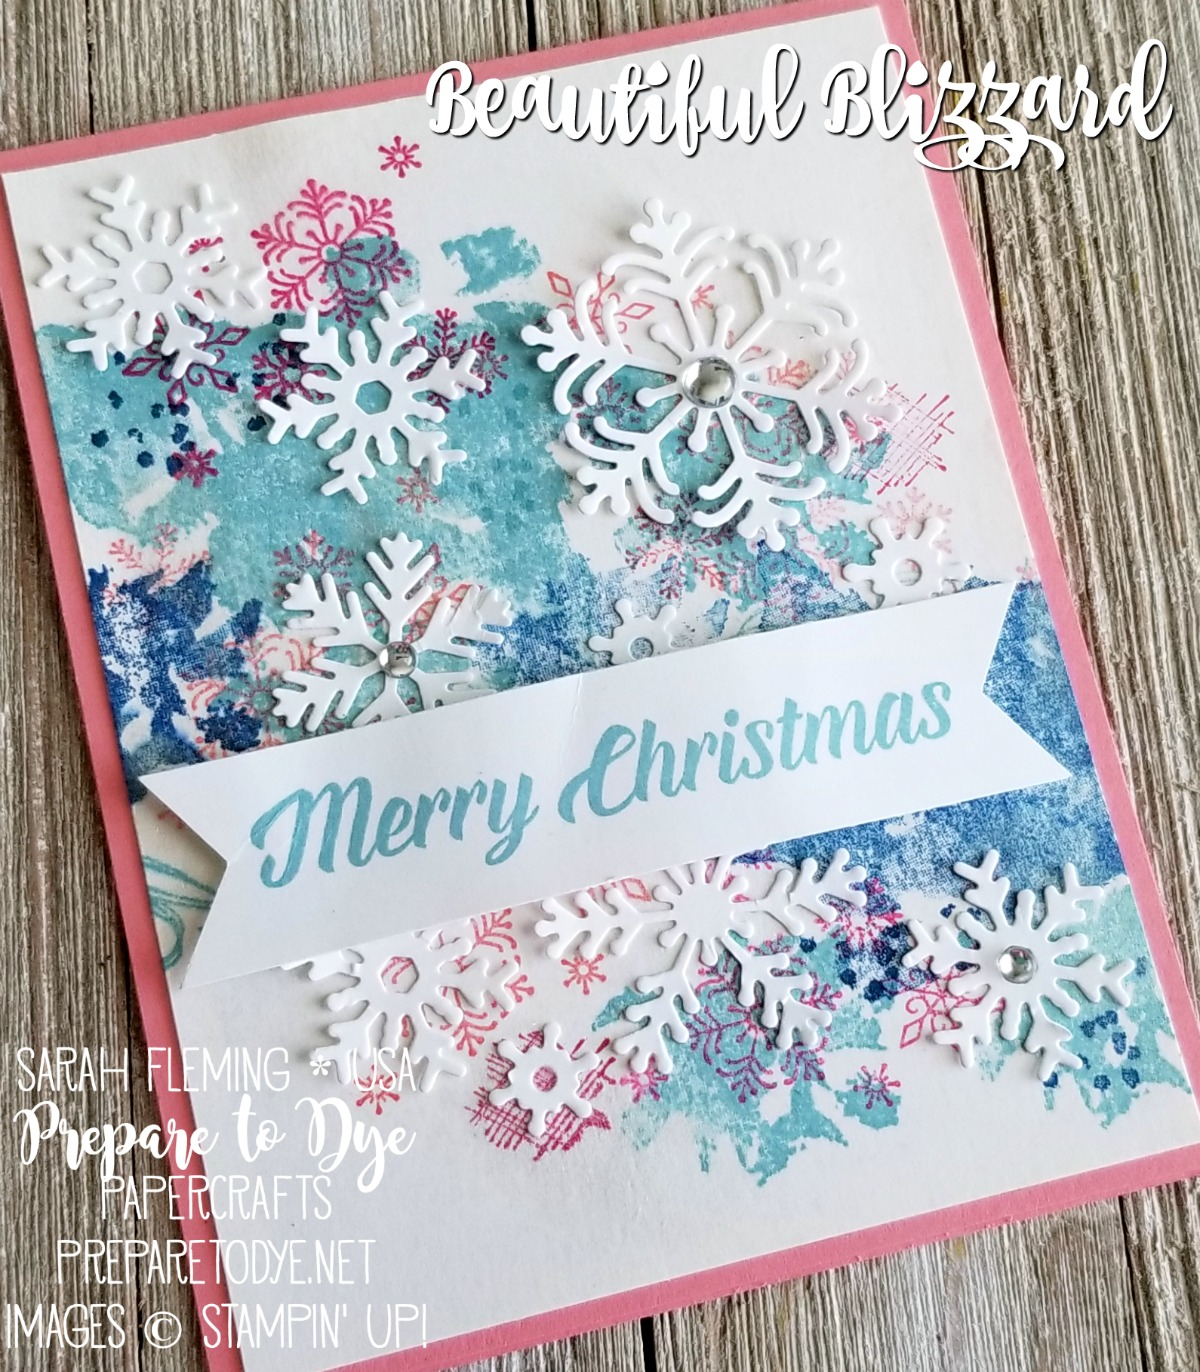 Stampin' Up! Beautiful Blizzard bundle with Blizzard Thinlits die, Timeless Tidings stamp set - handmade whimsical Christmas holiday card - Holiday Catalog sneak peek - Sarah Fleming - Prepare to Dye Papercrafts - #sdbh